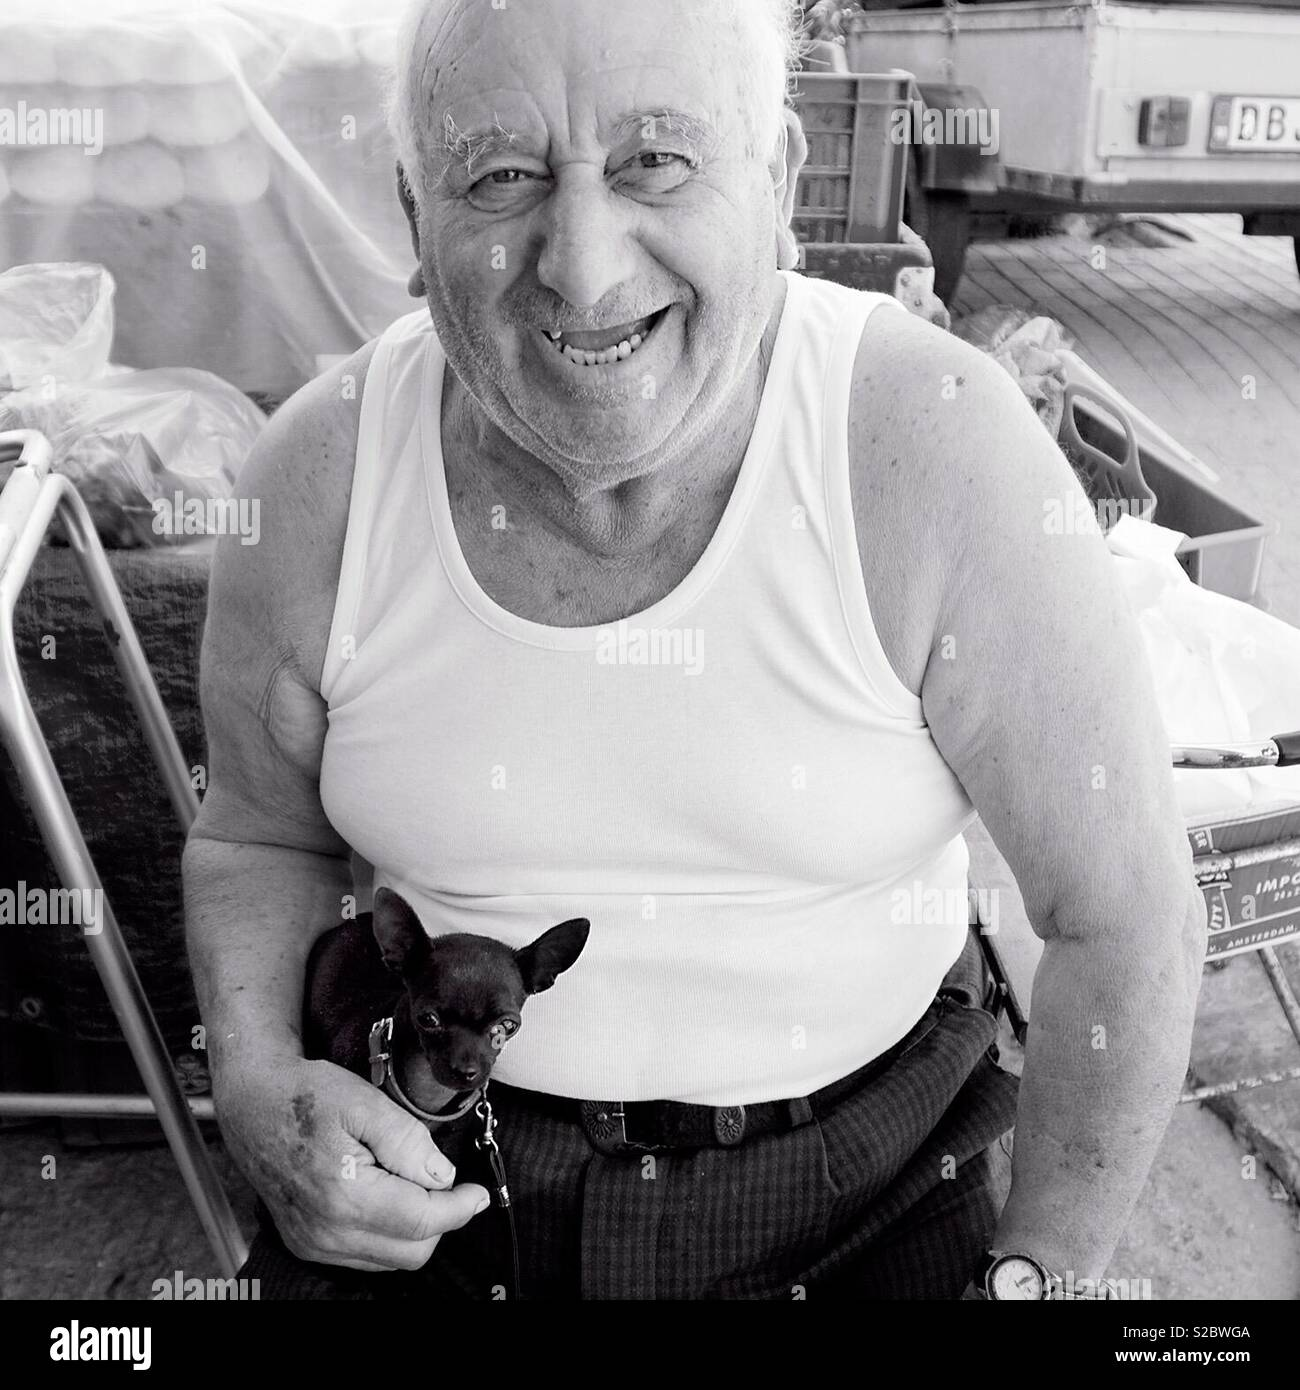 Portrait of an Old Man in a white vest laughing with his chihuahua on his lap in Malta - Stock Image